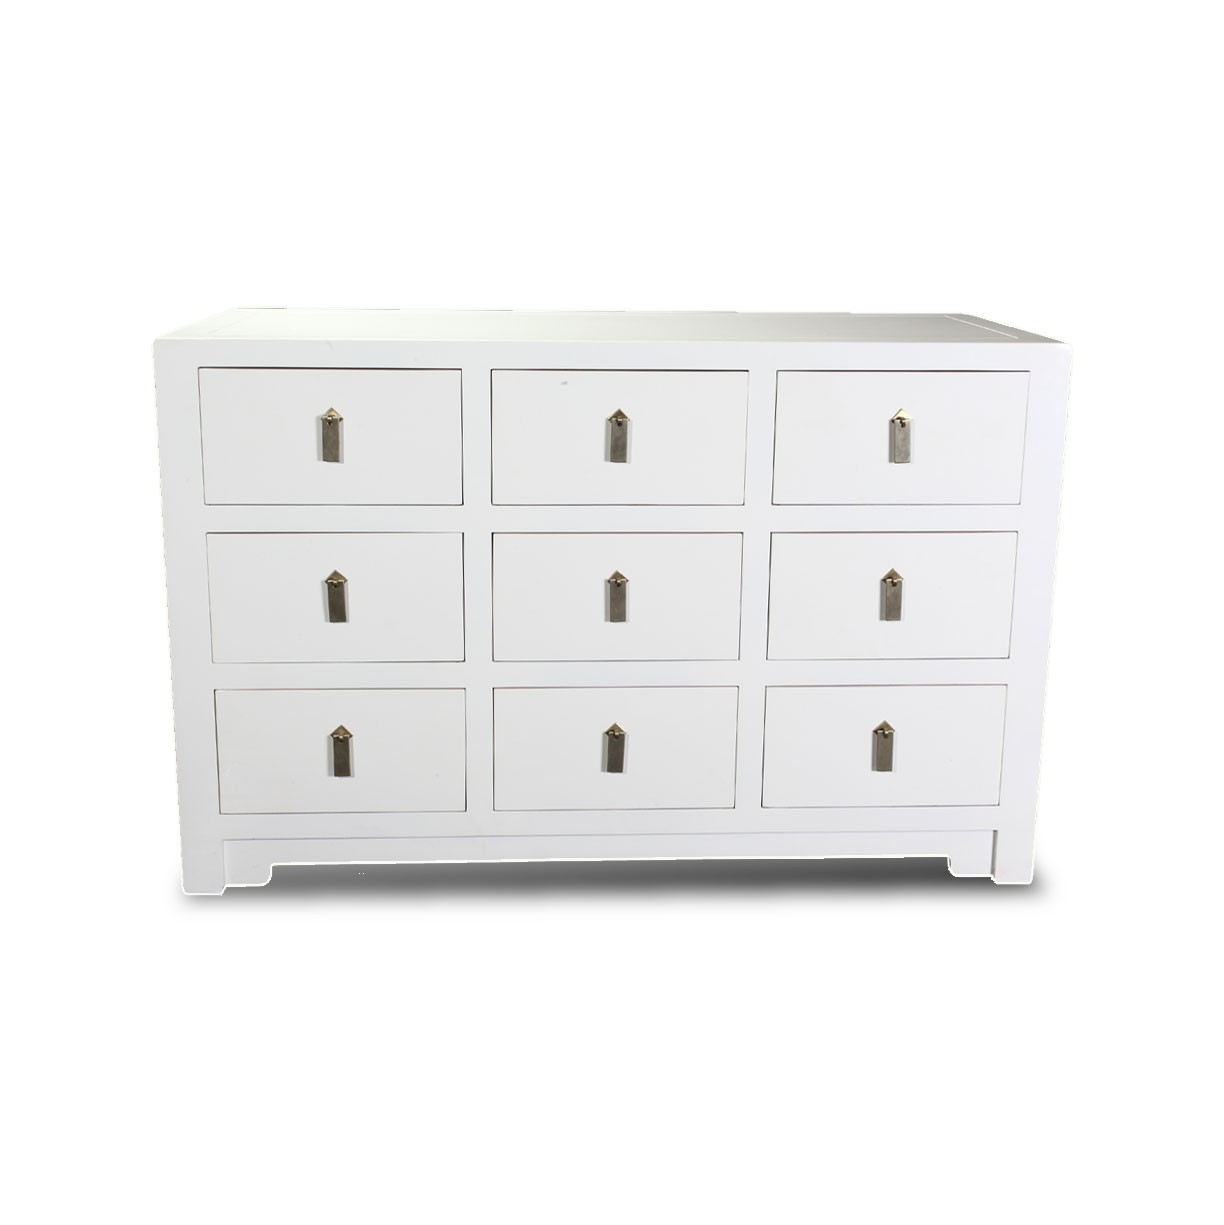 Square 9 drawer dresser